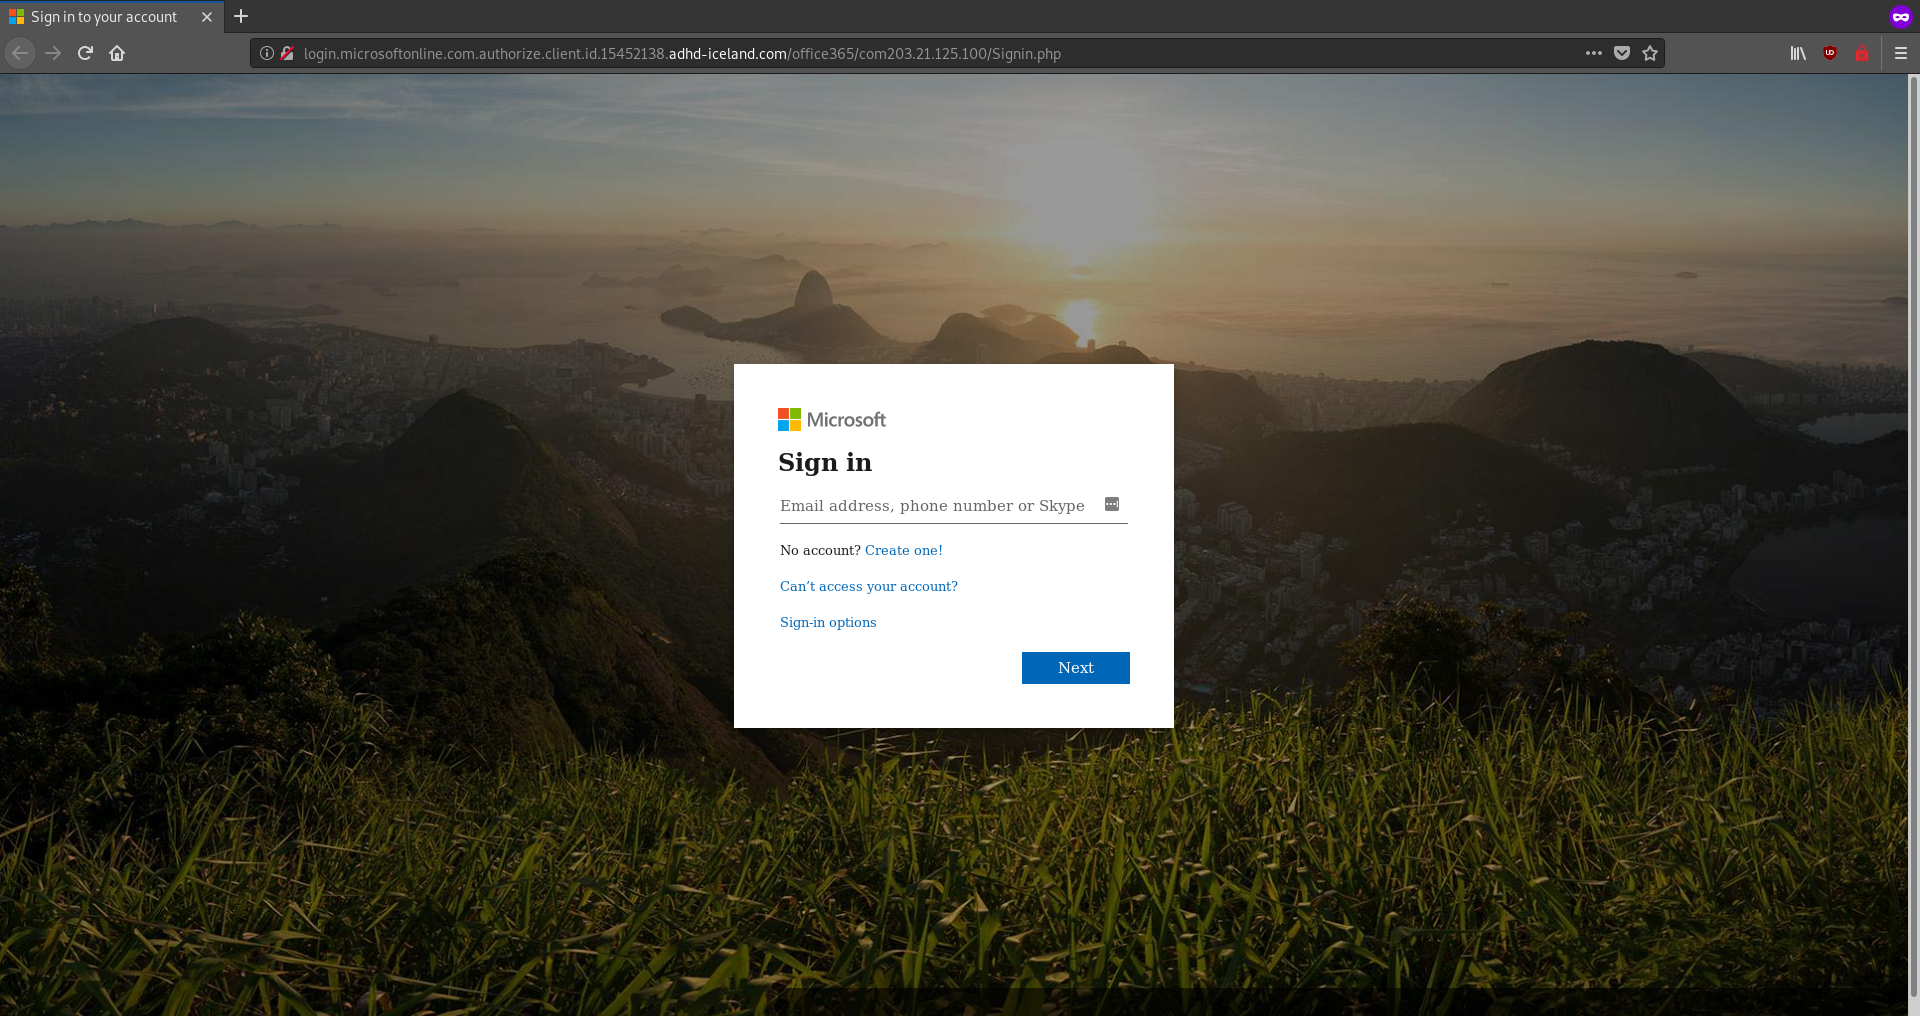 Scam_Microsoft_SignInPage_21102019